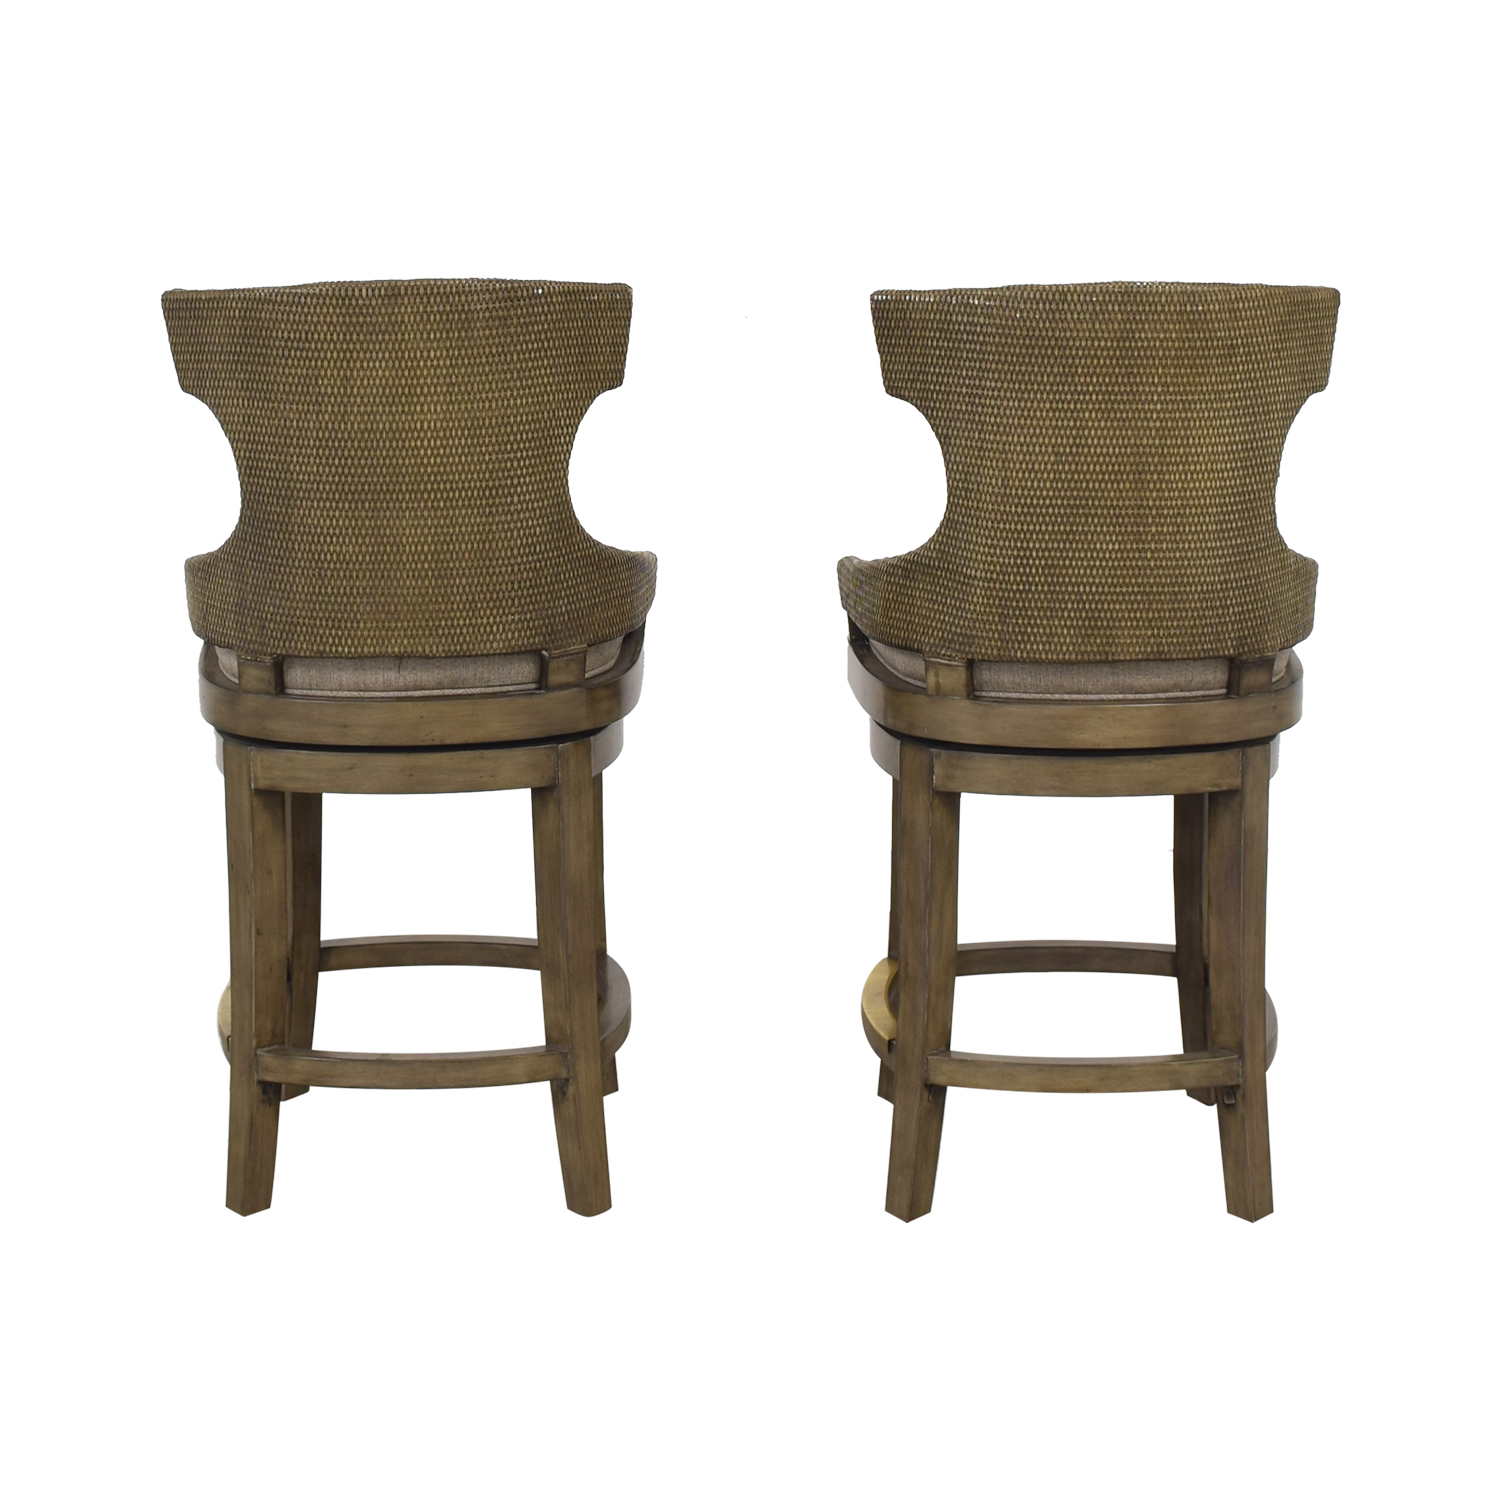 PI Inc Upholstered Swivel Bar Stools grey